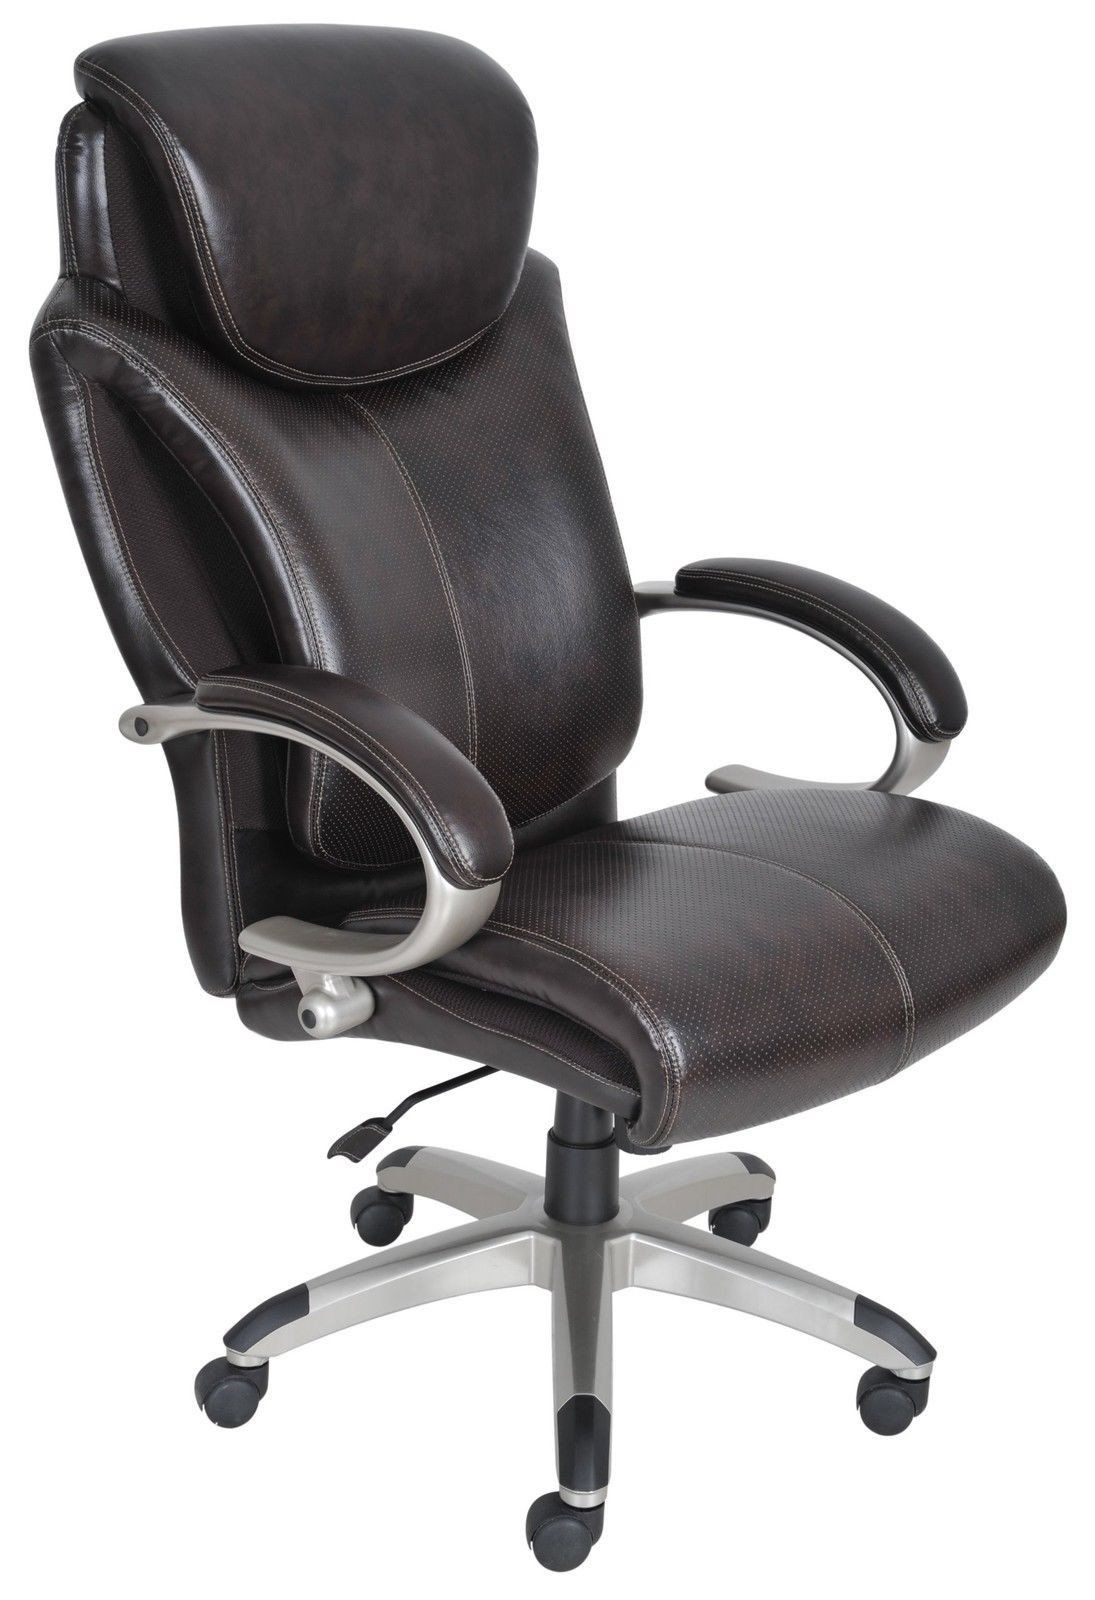 Serta 43809 Air Health And Wellness Executive Office Chair Big And